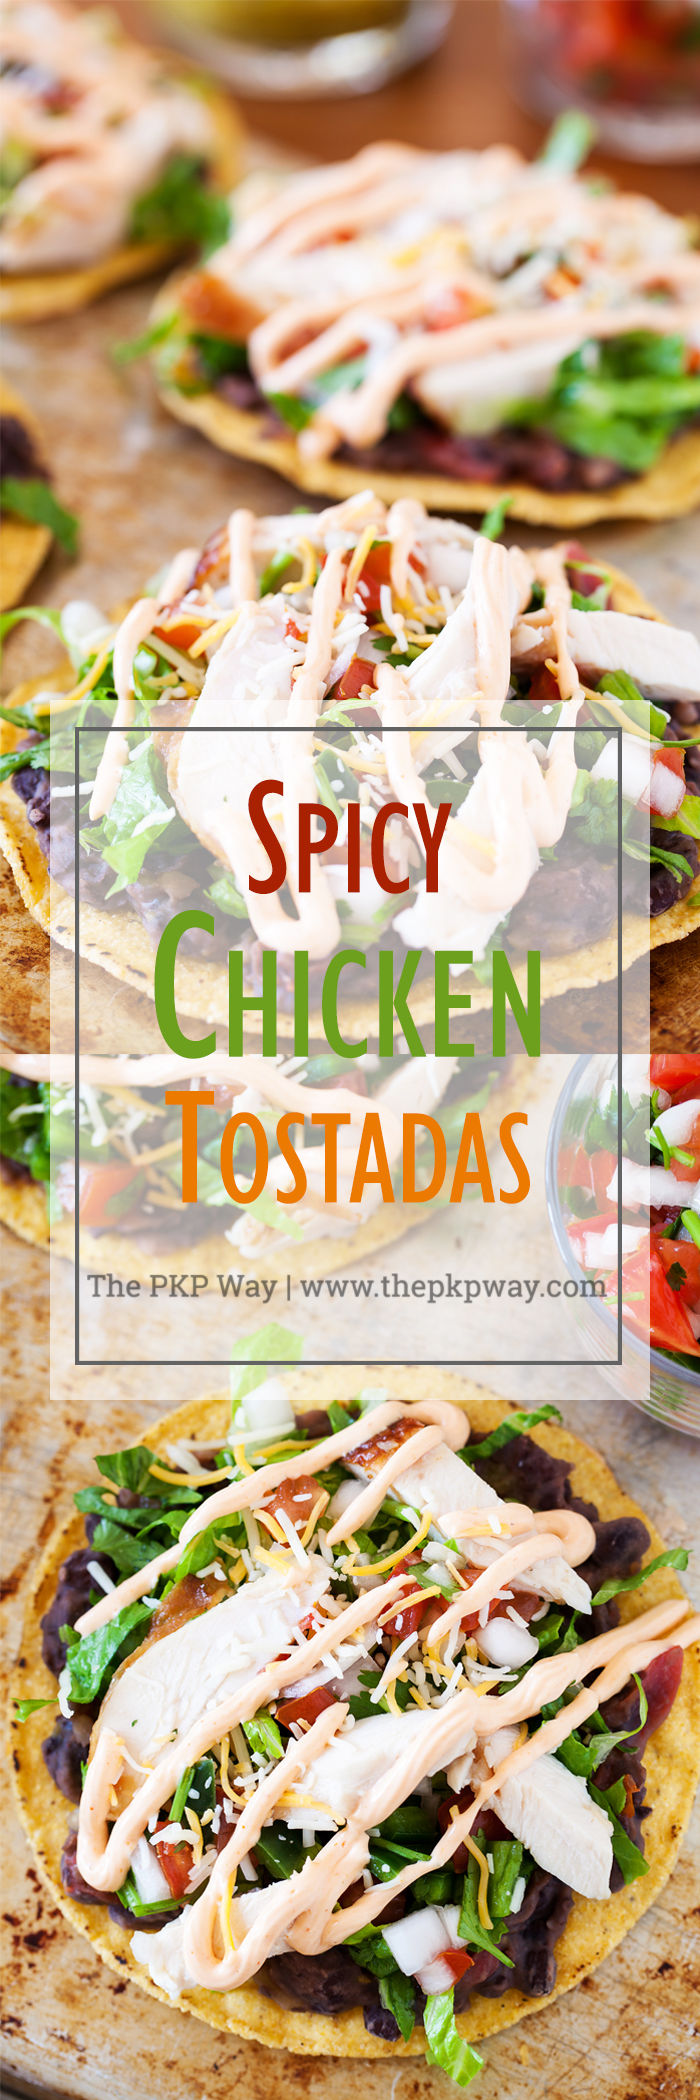 These spicy chicken tostadas are so easy and can be thrown together in minutes for a no-planning-involved Cinco de Mayo celebration or a twist on taco nights.